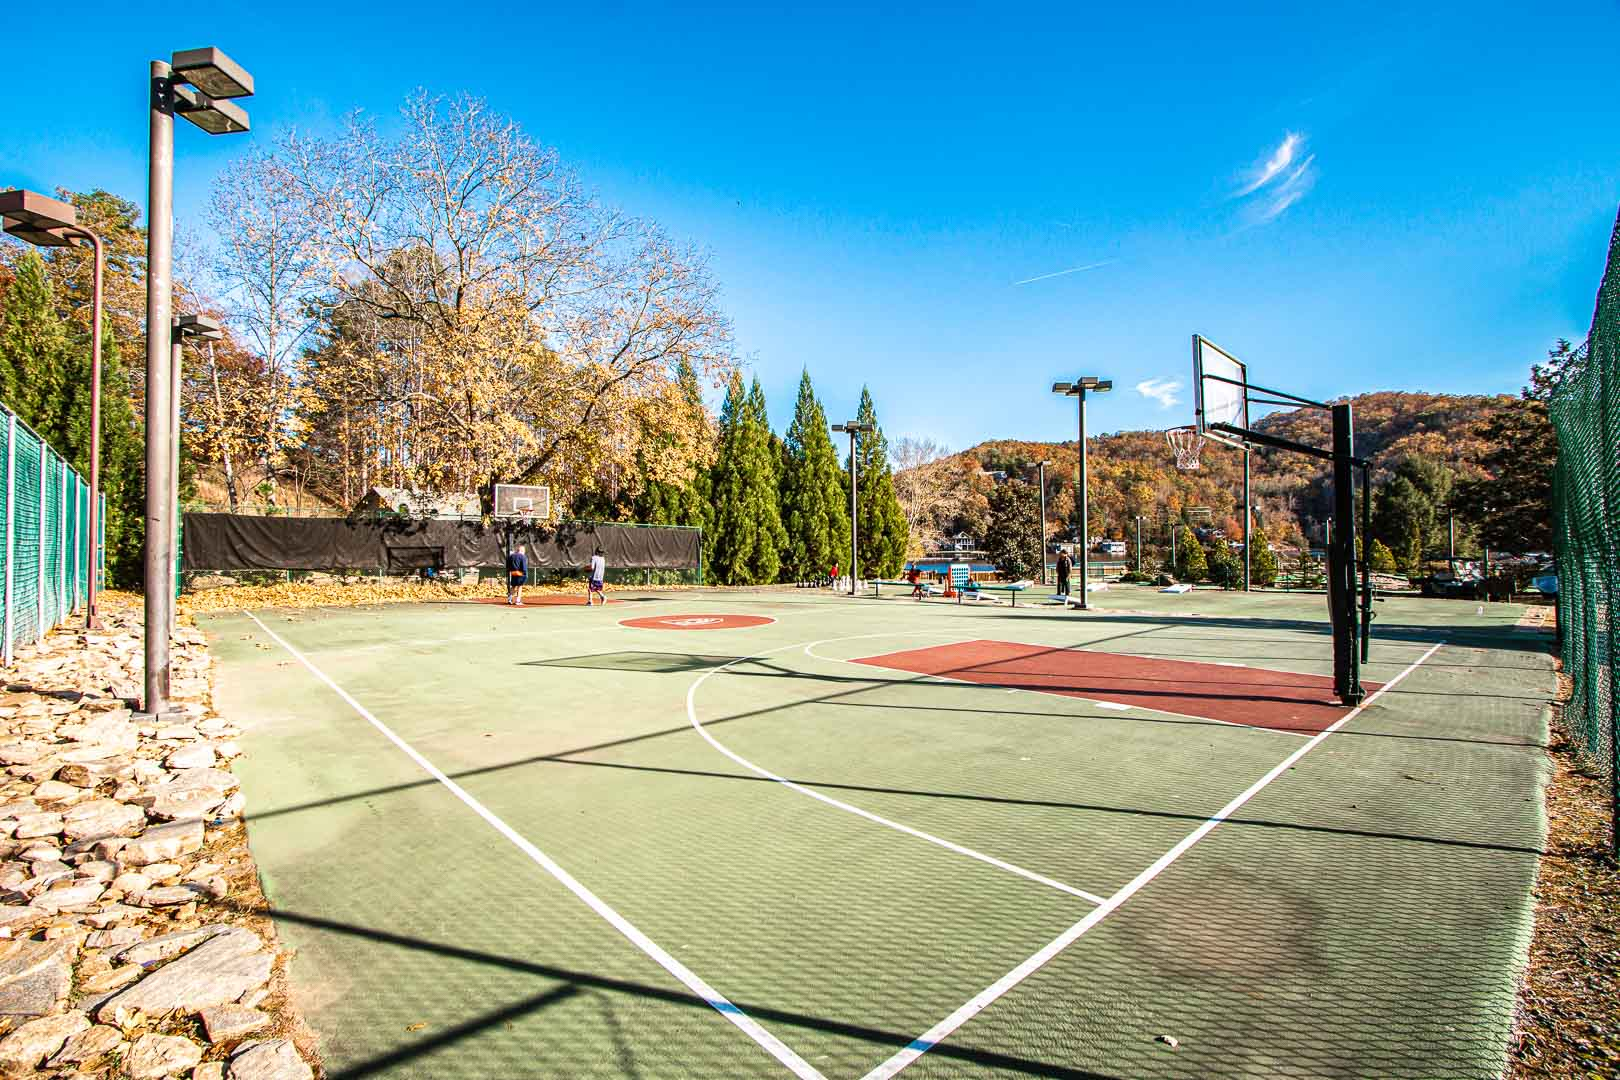 The outdoor basketball courts at VRI's Fairways of the Mountains in North Carolina.